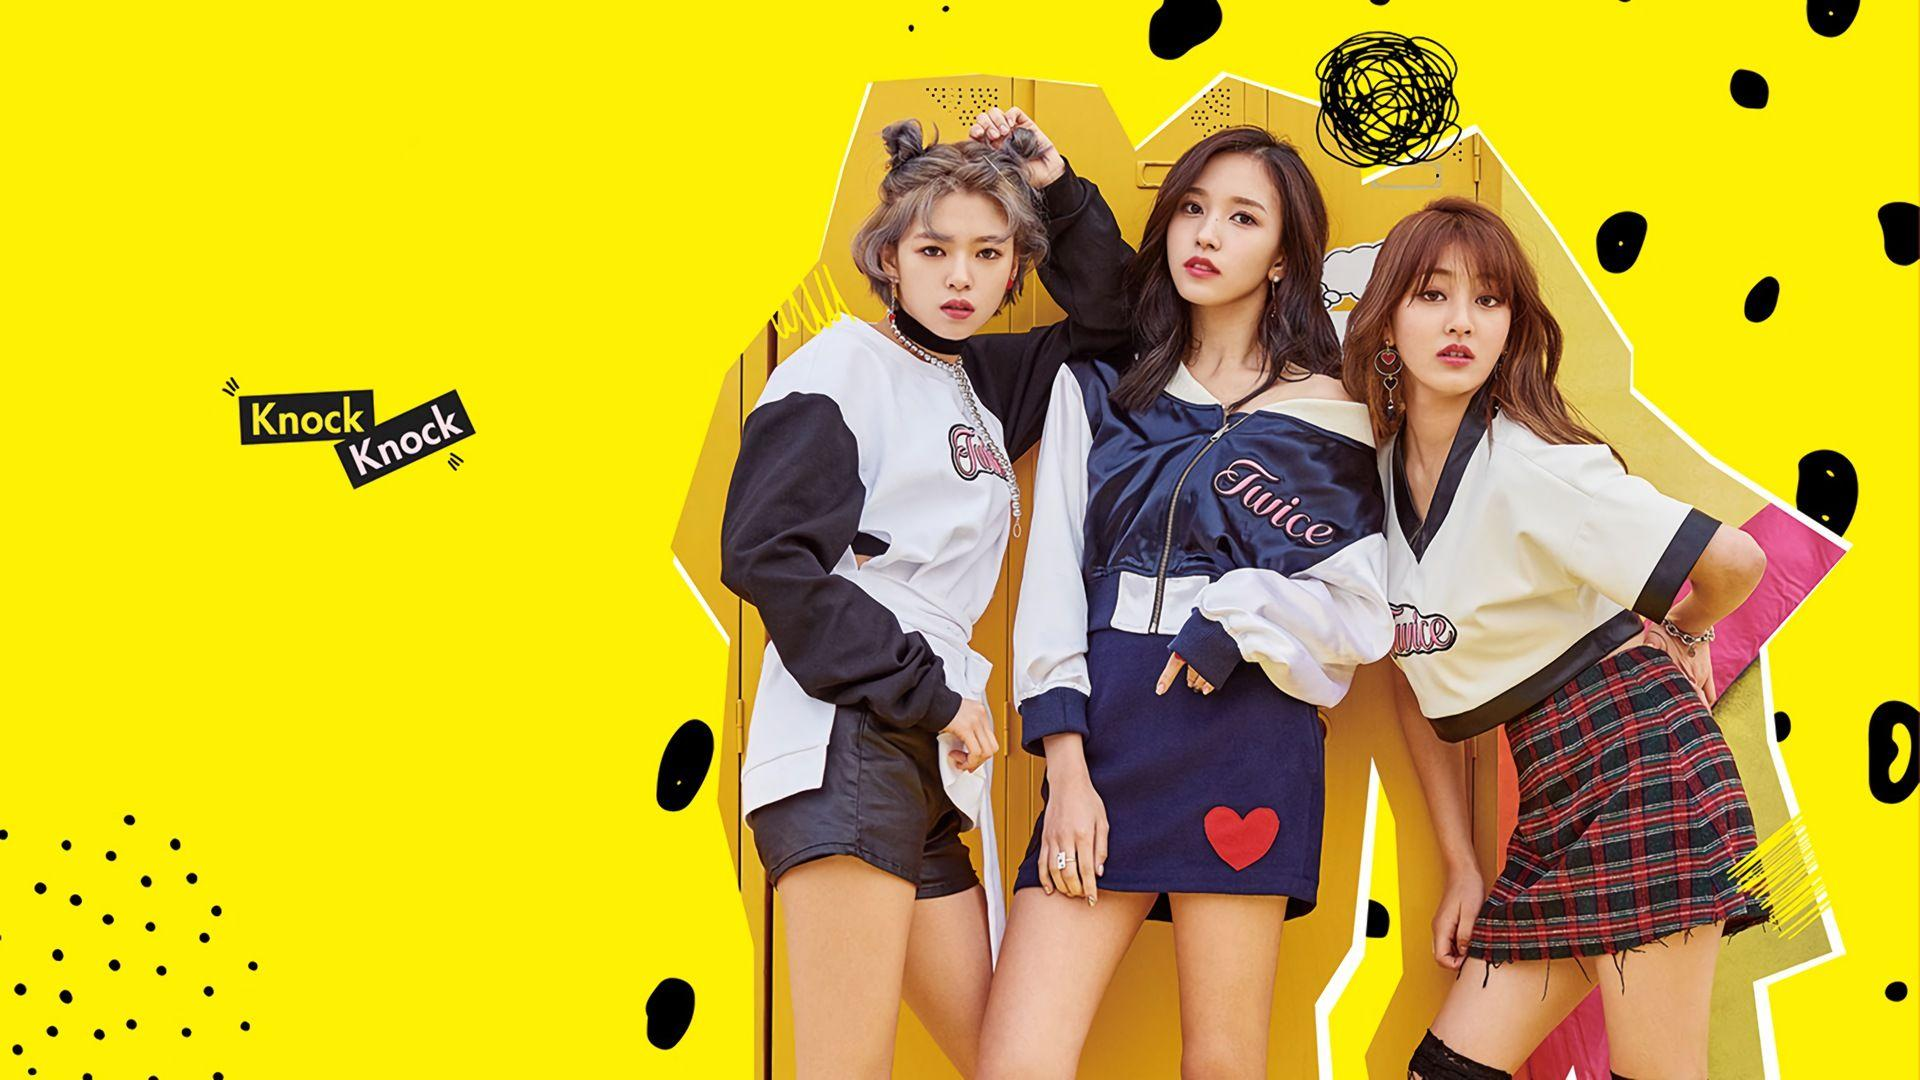 TWICE Knock Knock Jungyeon Mina Jihy... Wallpaper #27858